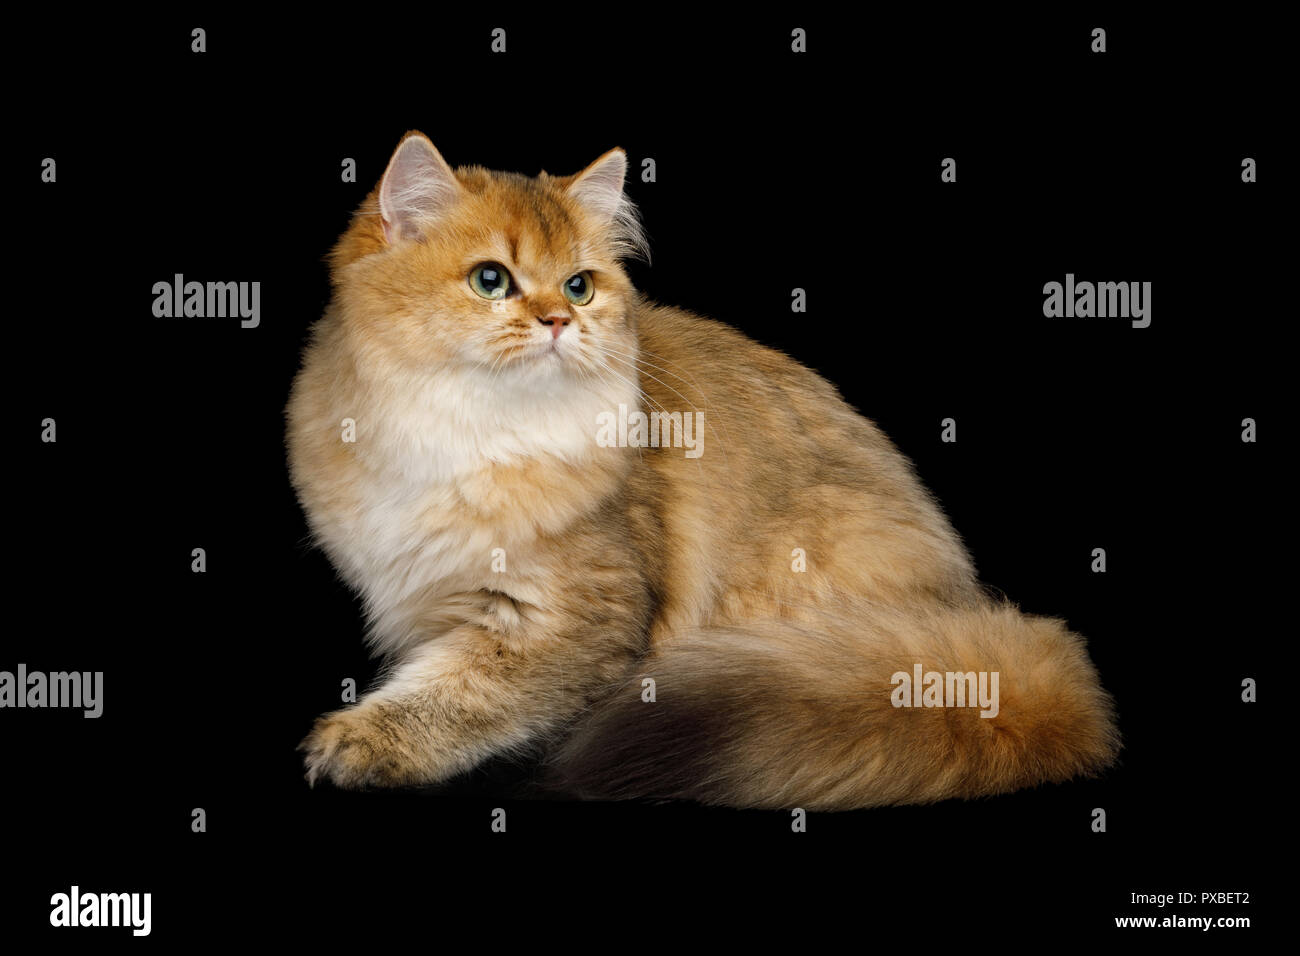 Playful British Cat Red color with Furry tail Sitting on Isolated Black Background - Stock Image